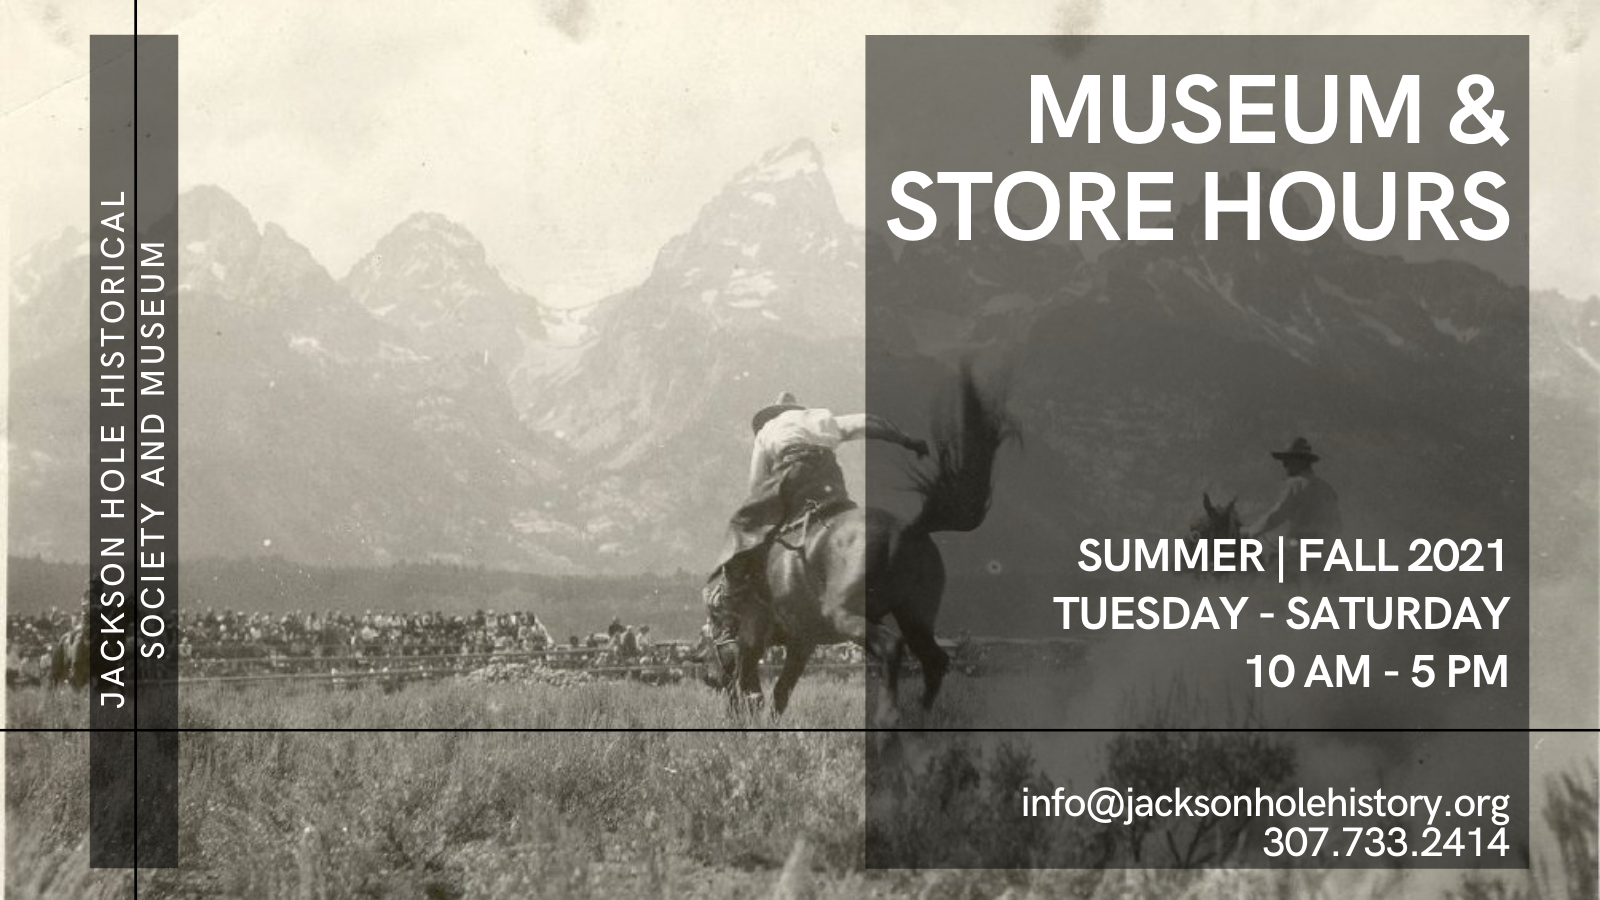 Jackson Hole History Museum and Store Hours 2021